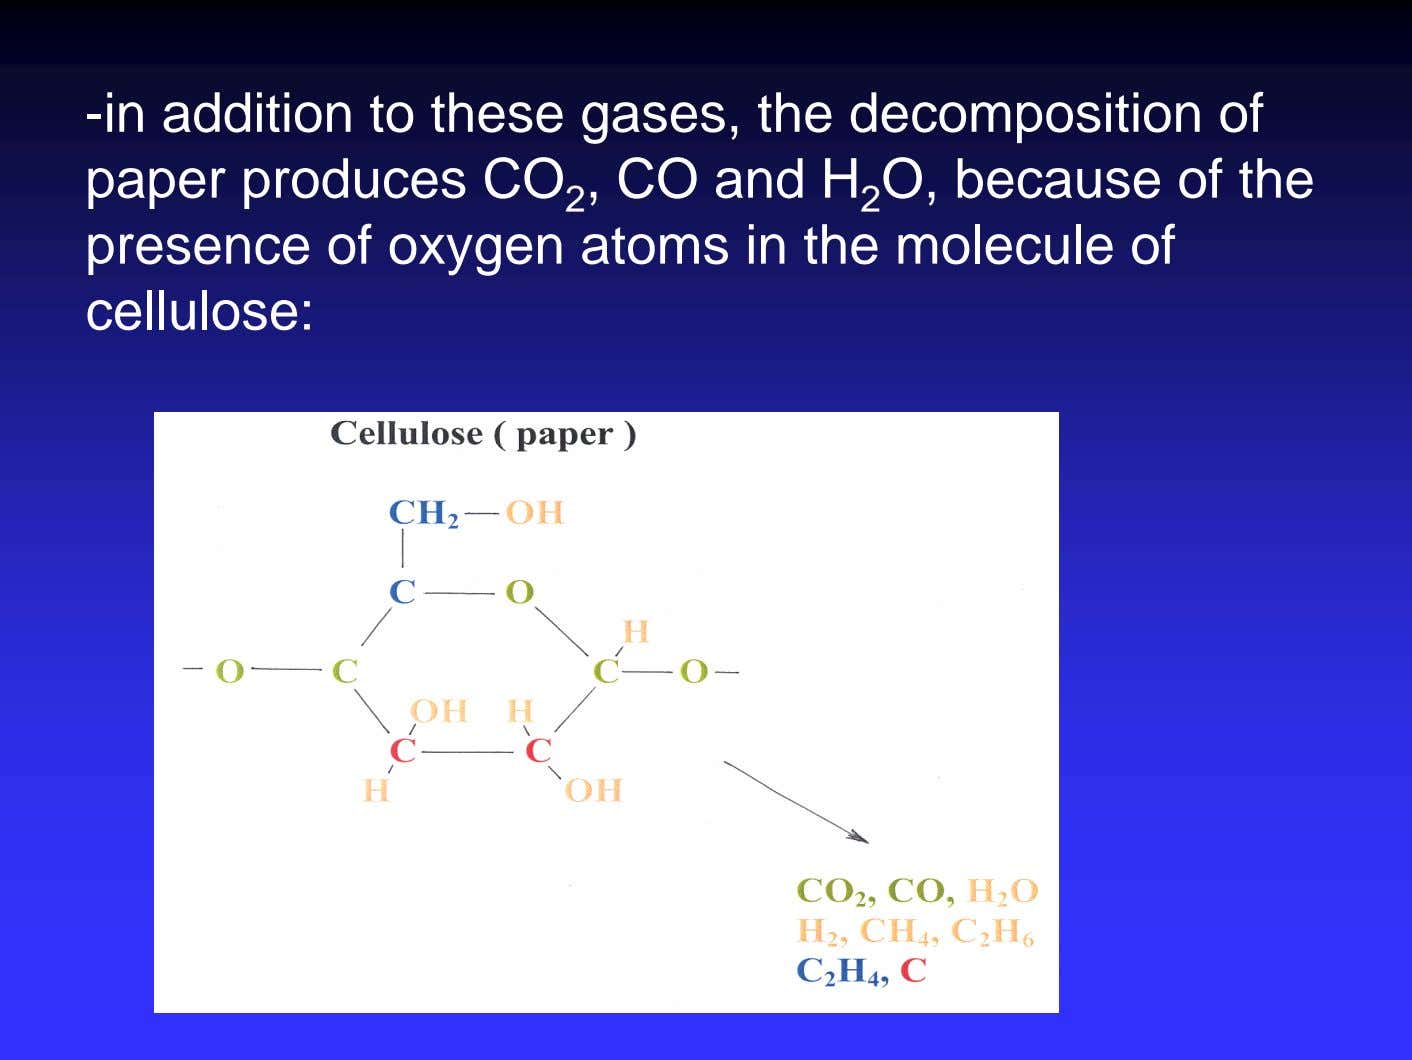 -in addition to these gases, the decomposition of paper produces CO 2 , CO and